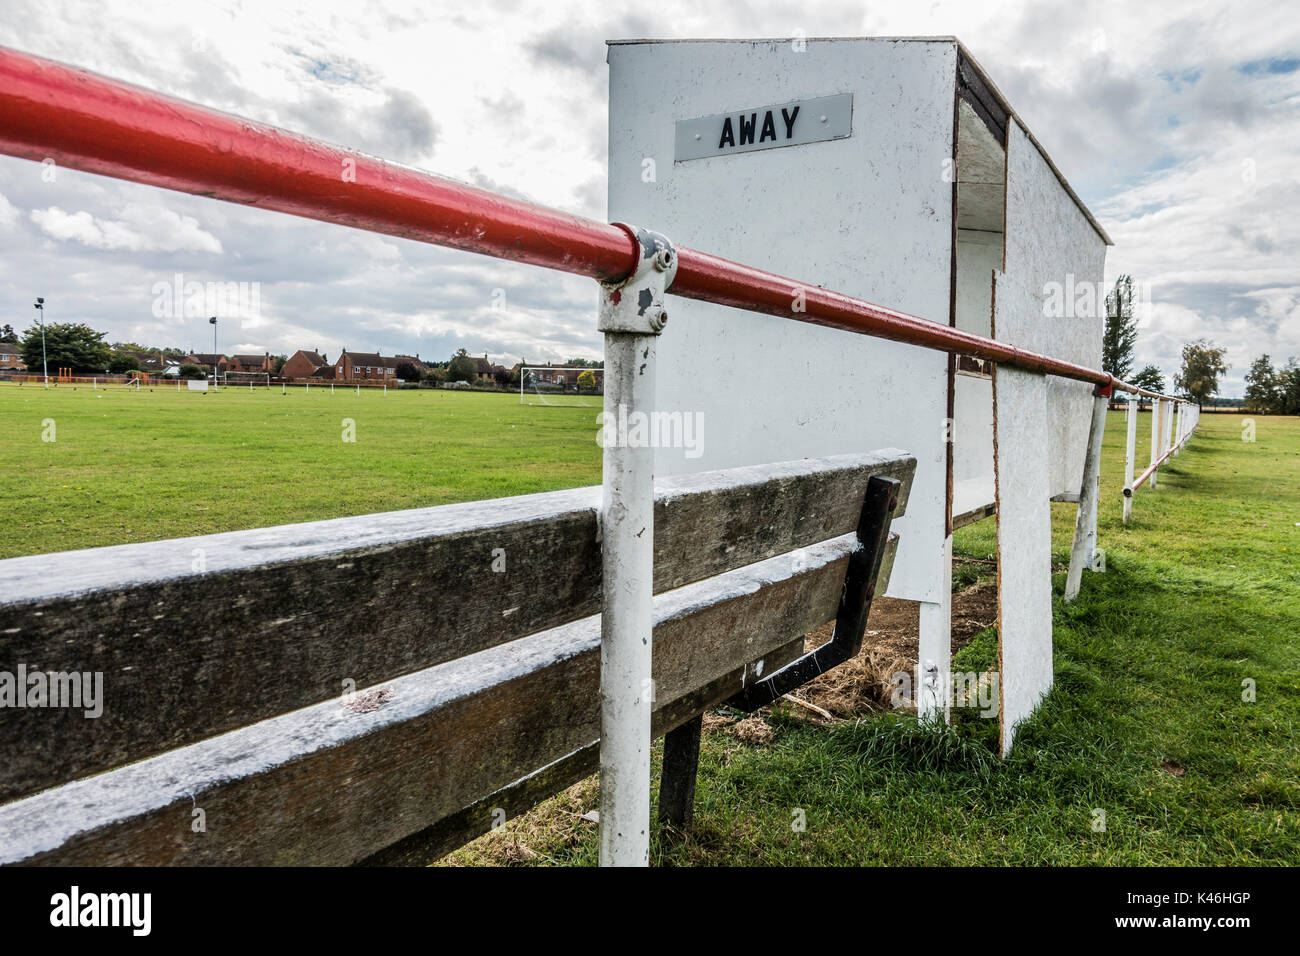 Grass roots football. Basic shelter next to pitch with unsecure chipboard back panel for the away team. Langtoft United FC home ground, England, UK. - Stock Image